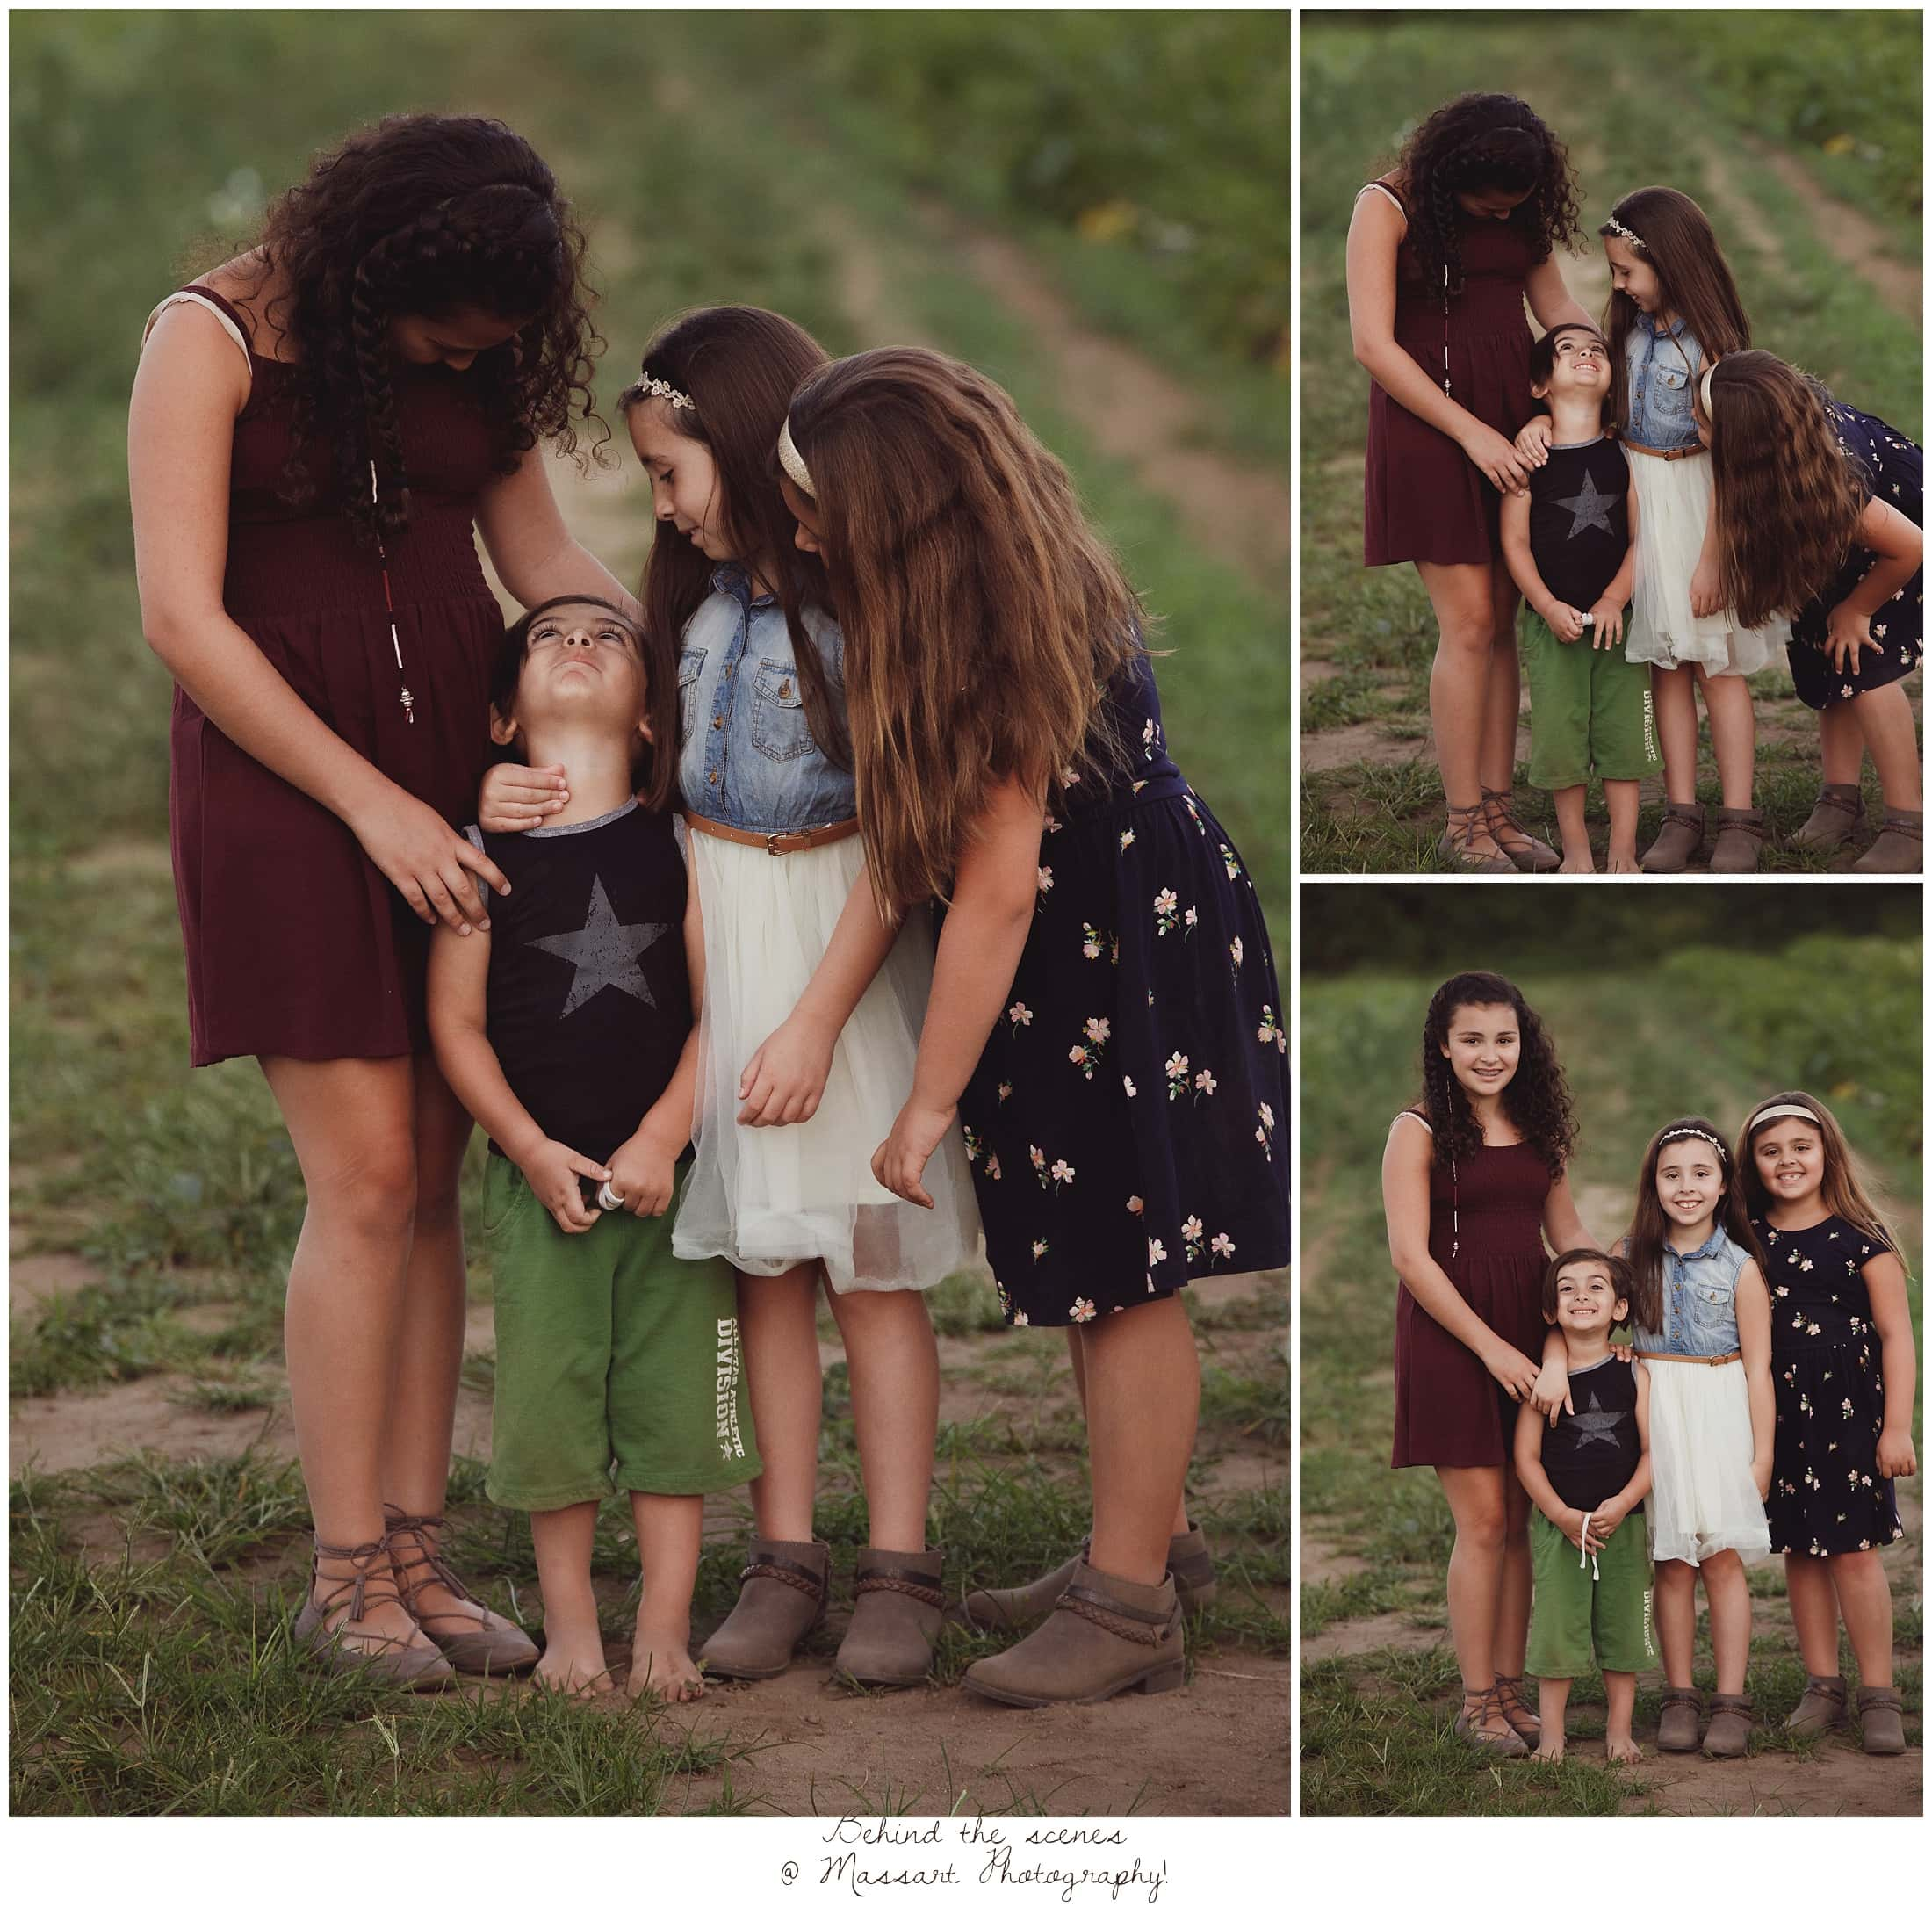 Outdoor portraits of the sisters and their friend captured by Massart Photography Rhode Island